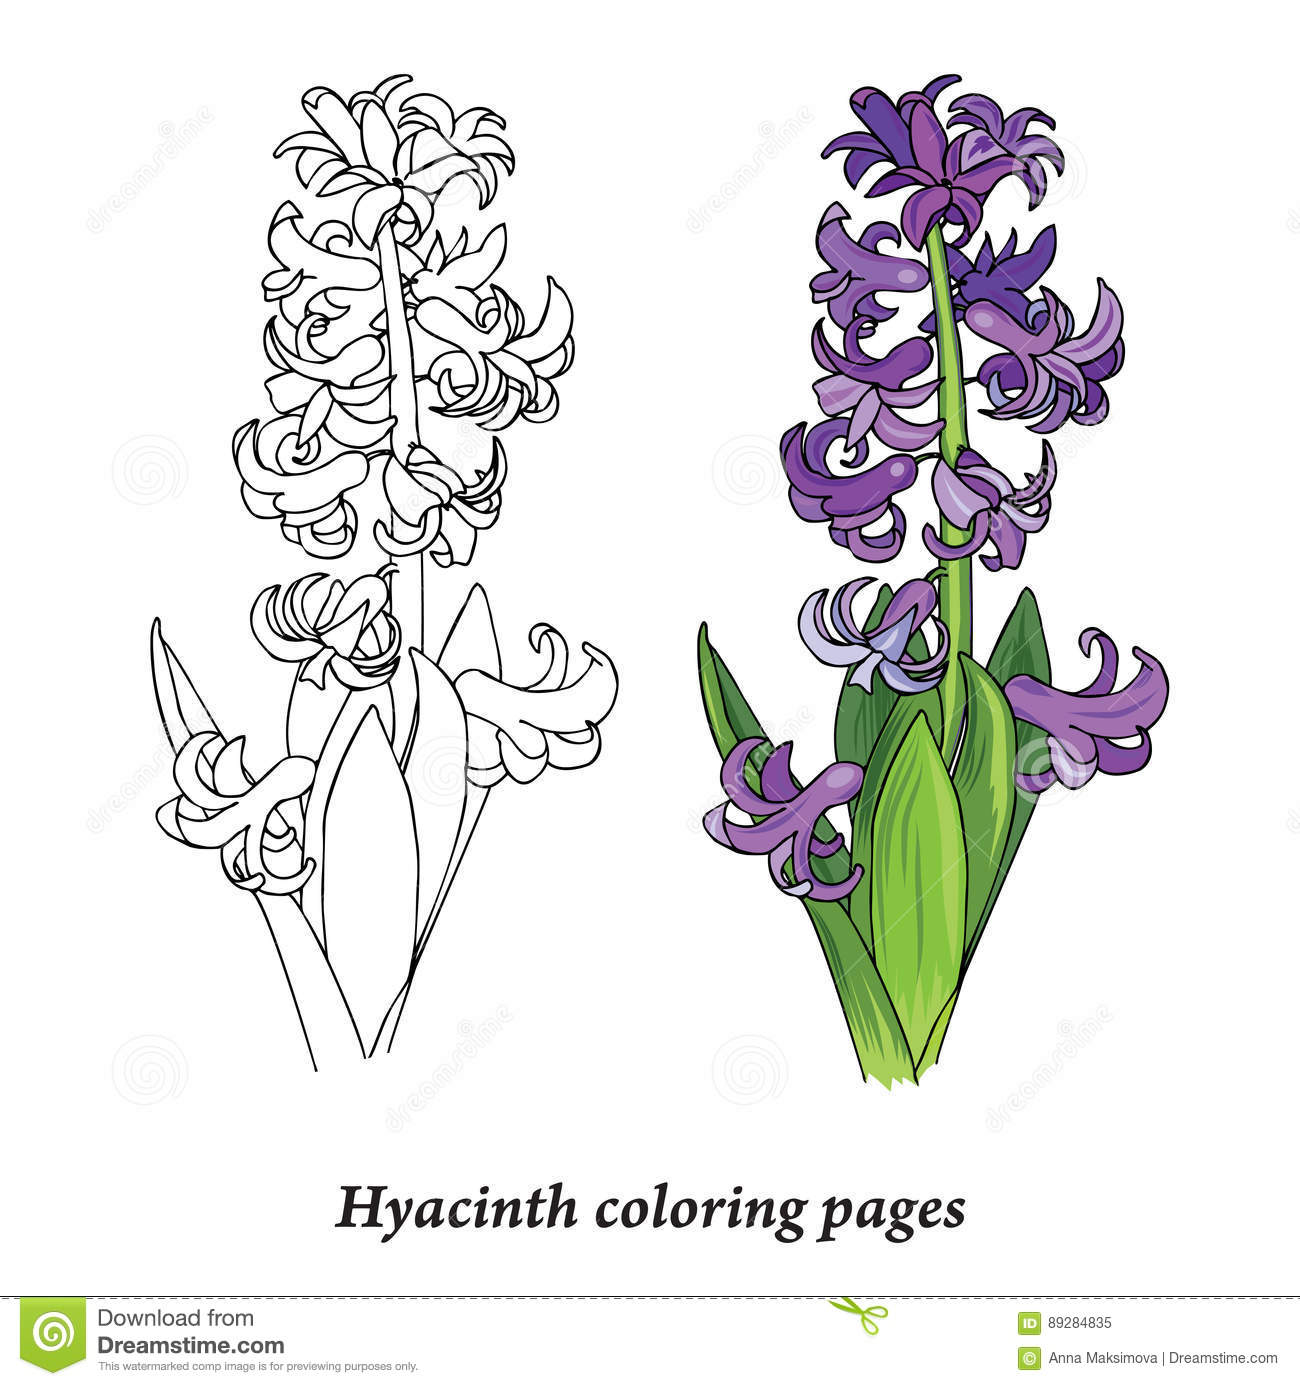 Royalty Free Vector Download Hyacinth Coloring Pages